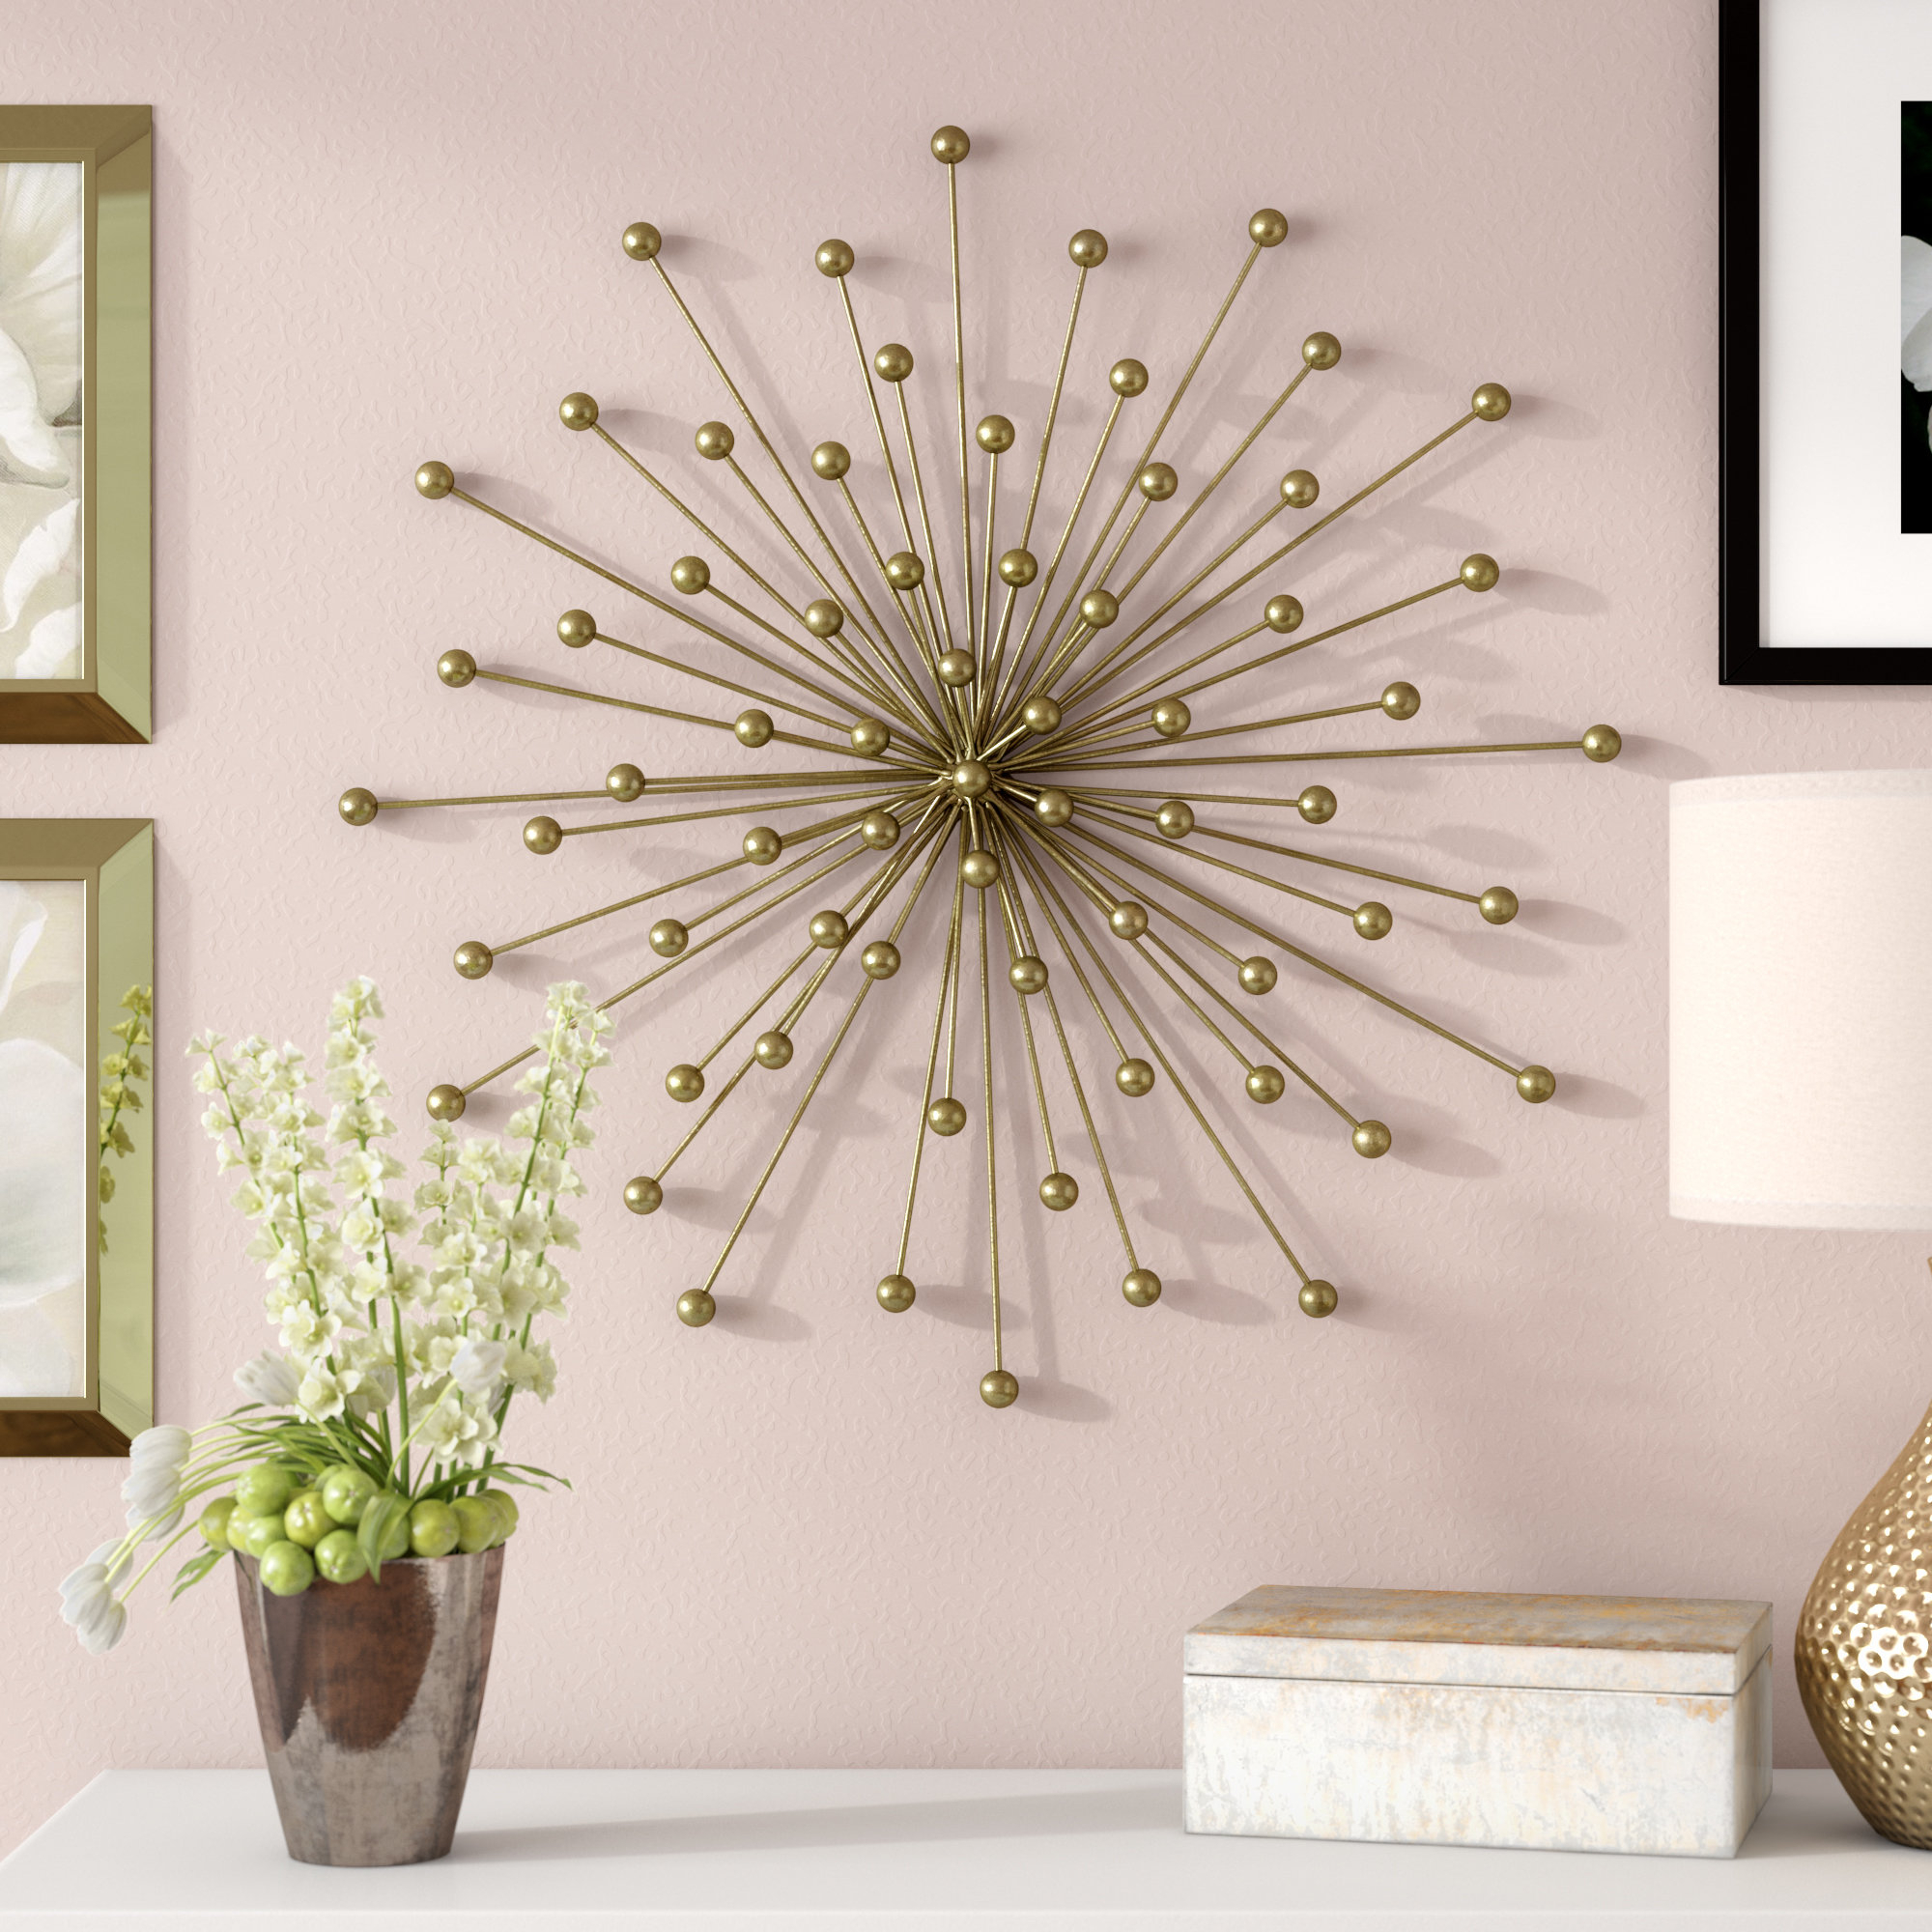 Starburst Wall Decor By Willa Arlo Interiors Within Most Popular Willa Arlo Interiors Burst Wall Décor & Reviews (Gallery 9 of 20)